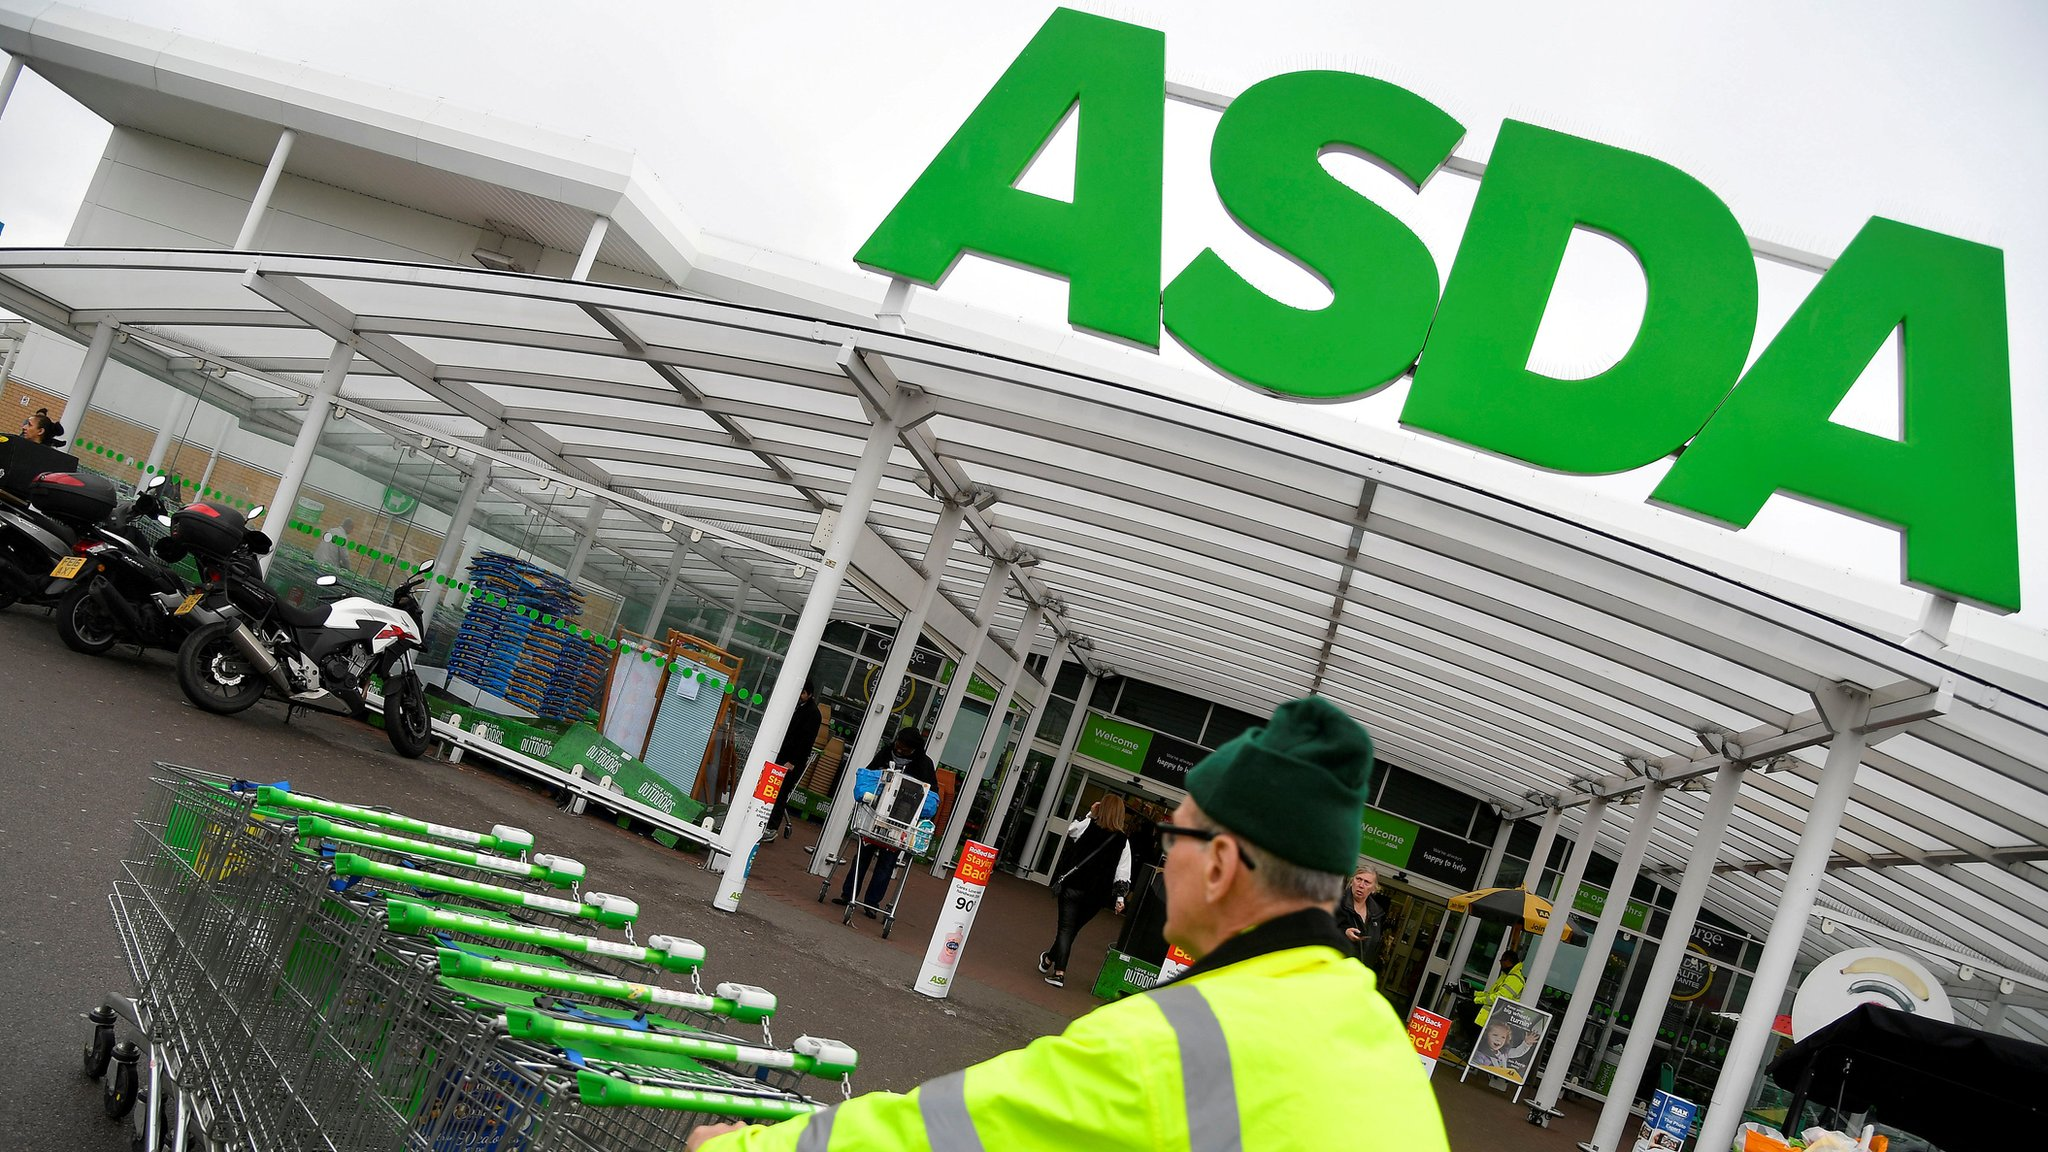 Asda revival continues as sales rise again